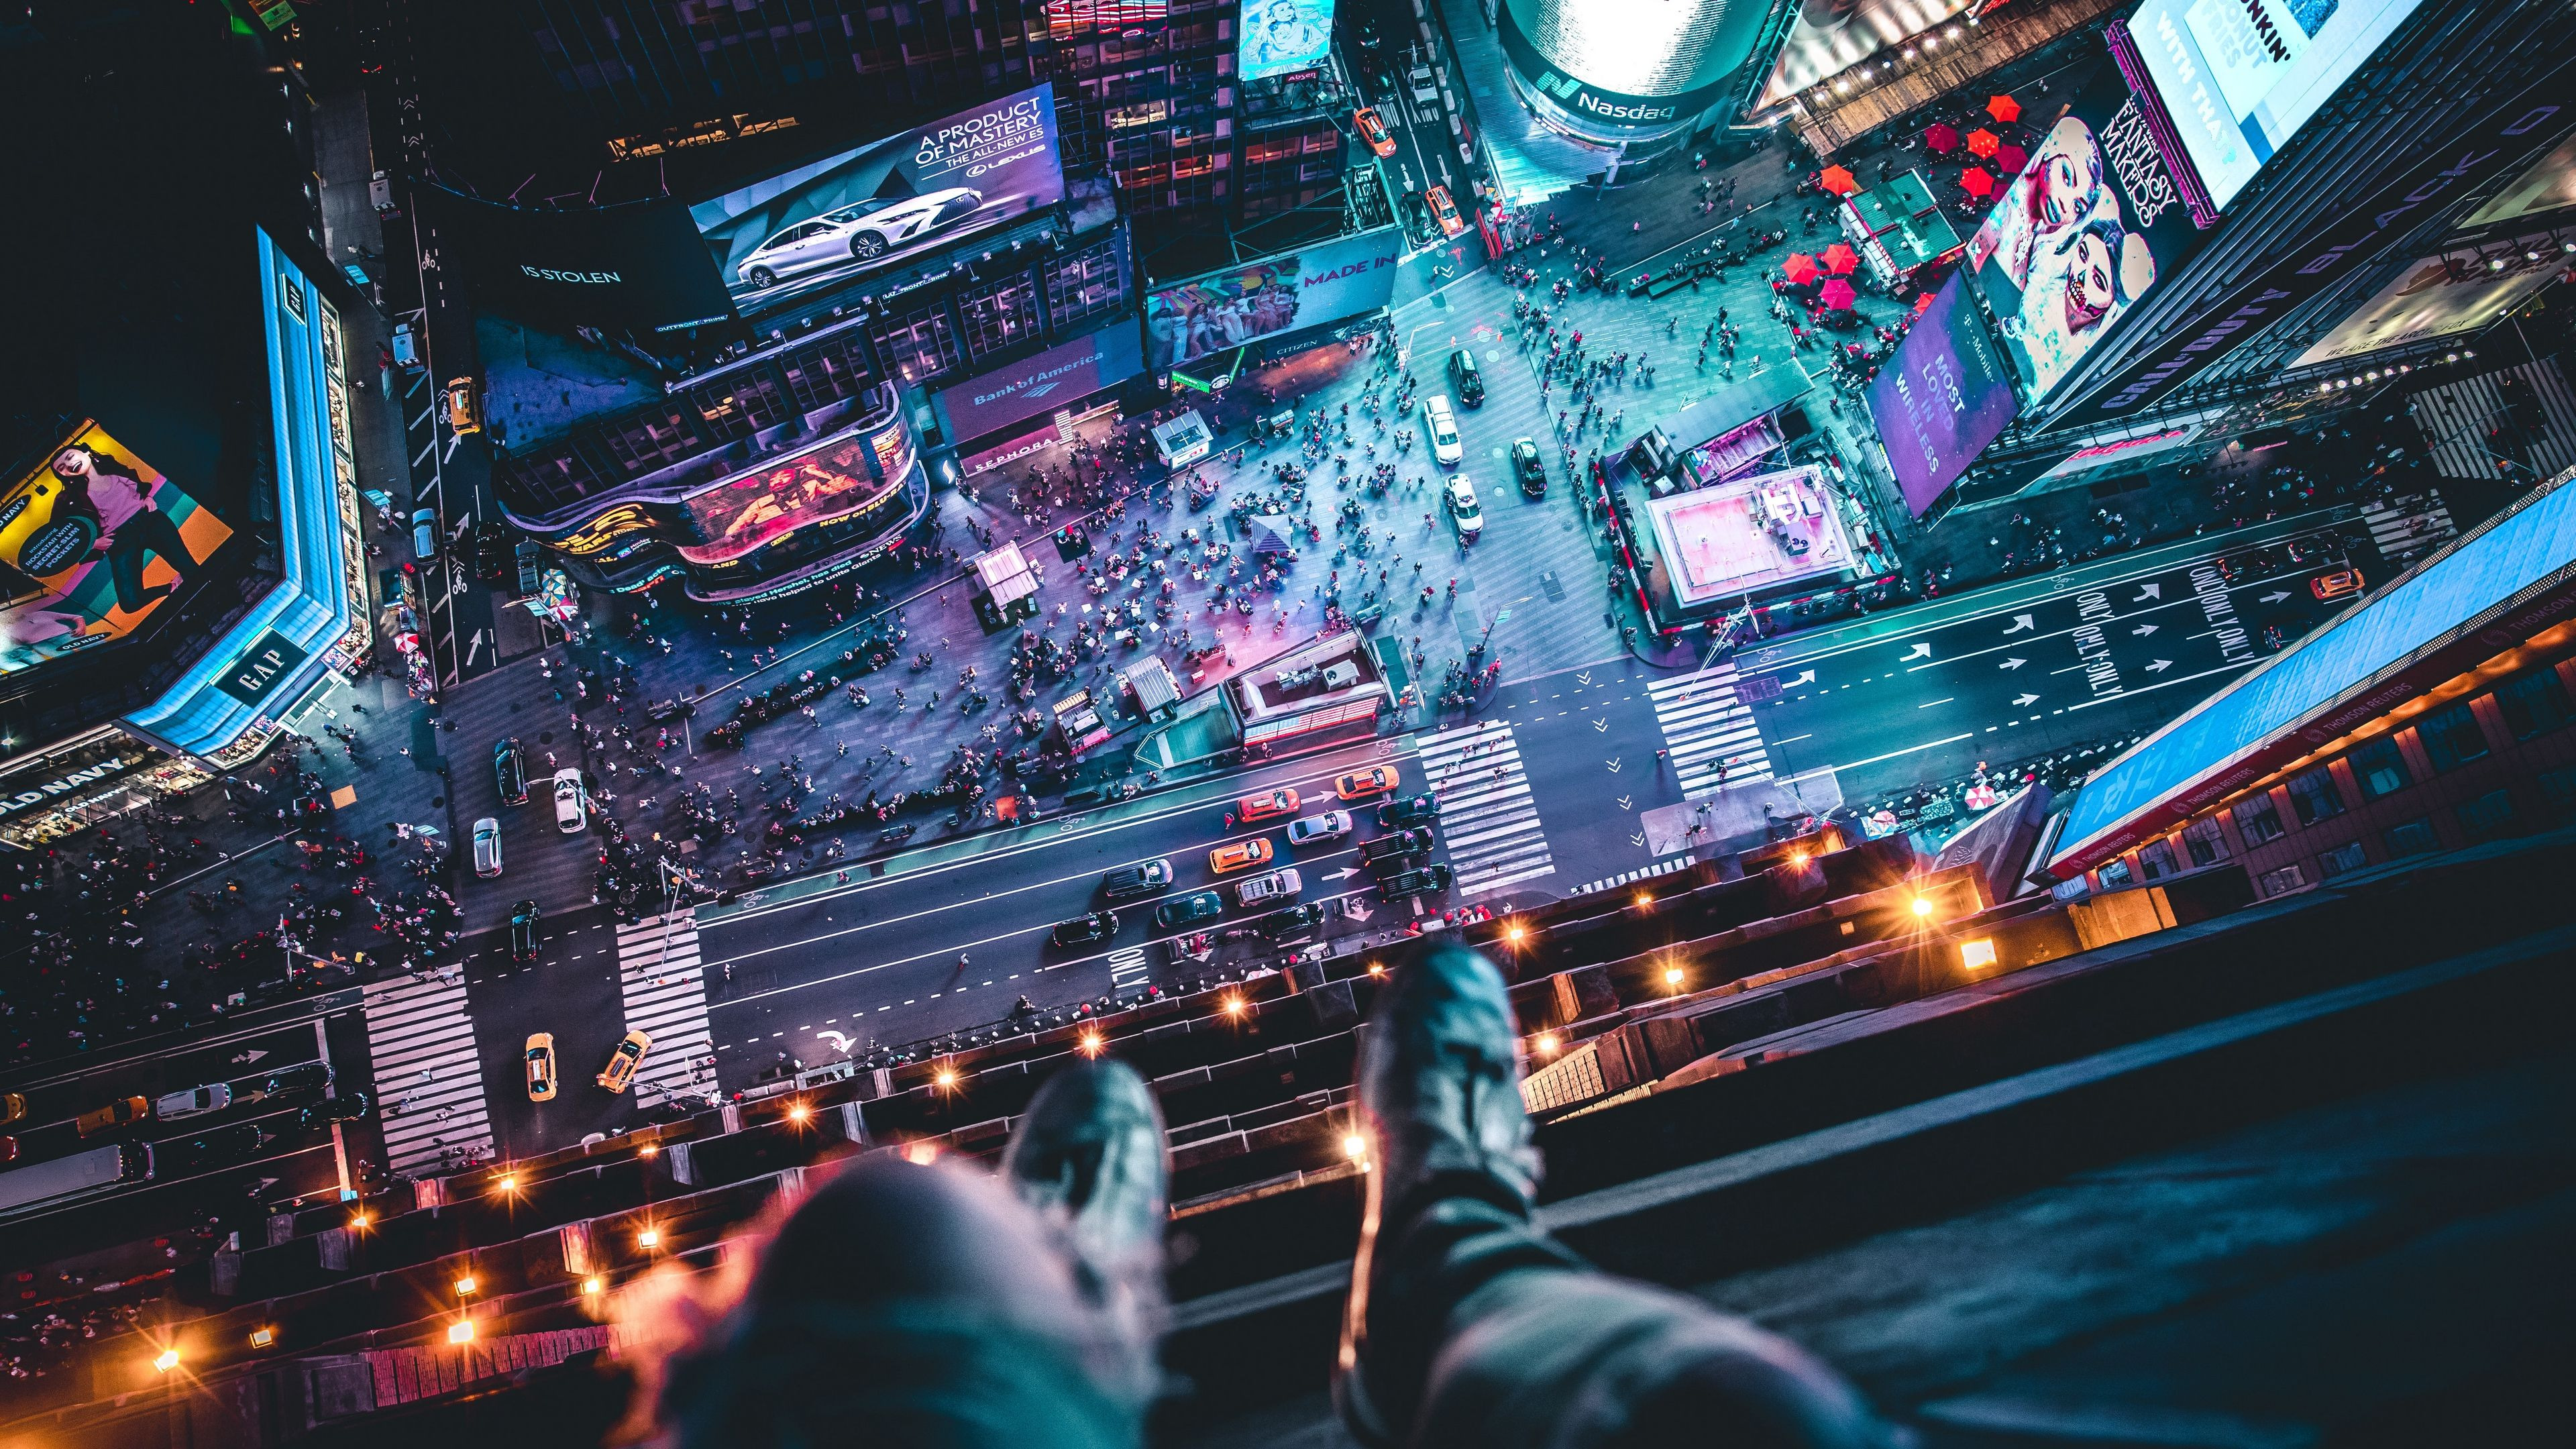 Night City Top View Legs Roof Overview Megalopolis New York Usa 4k Top View Night City Legs In 2020 Night City Cityscape City